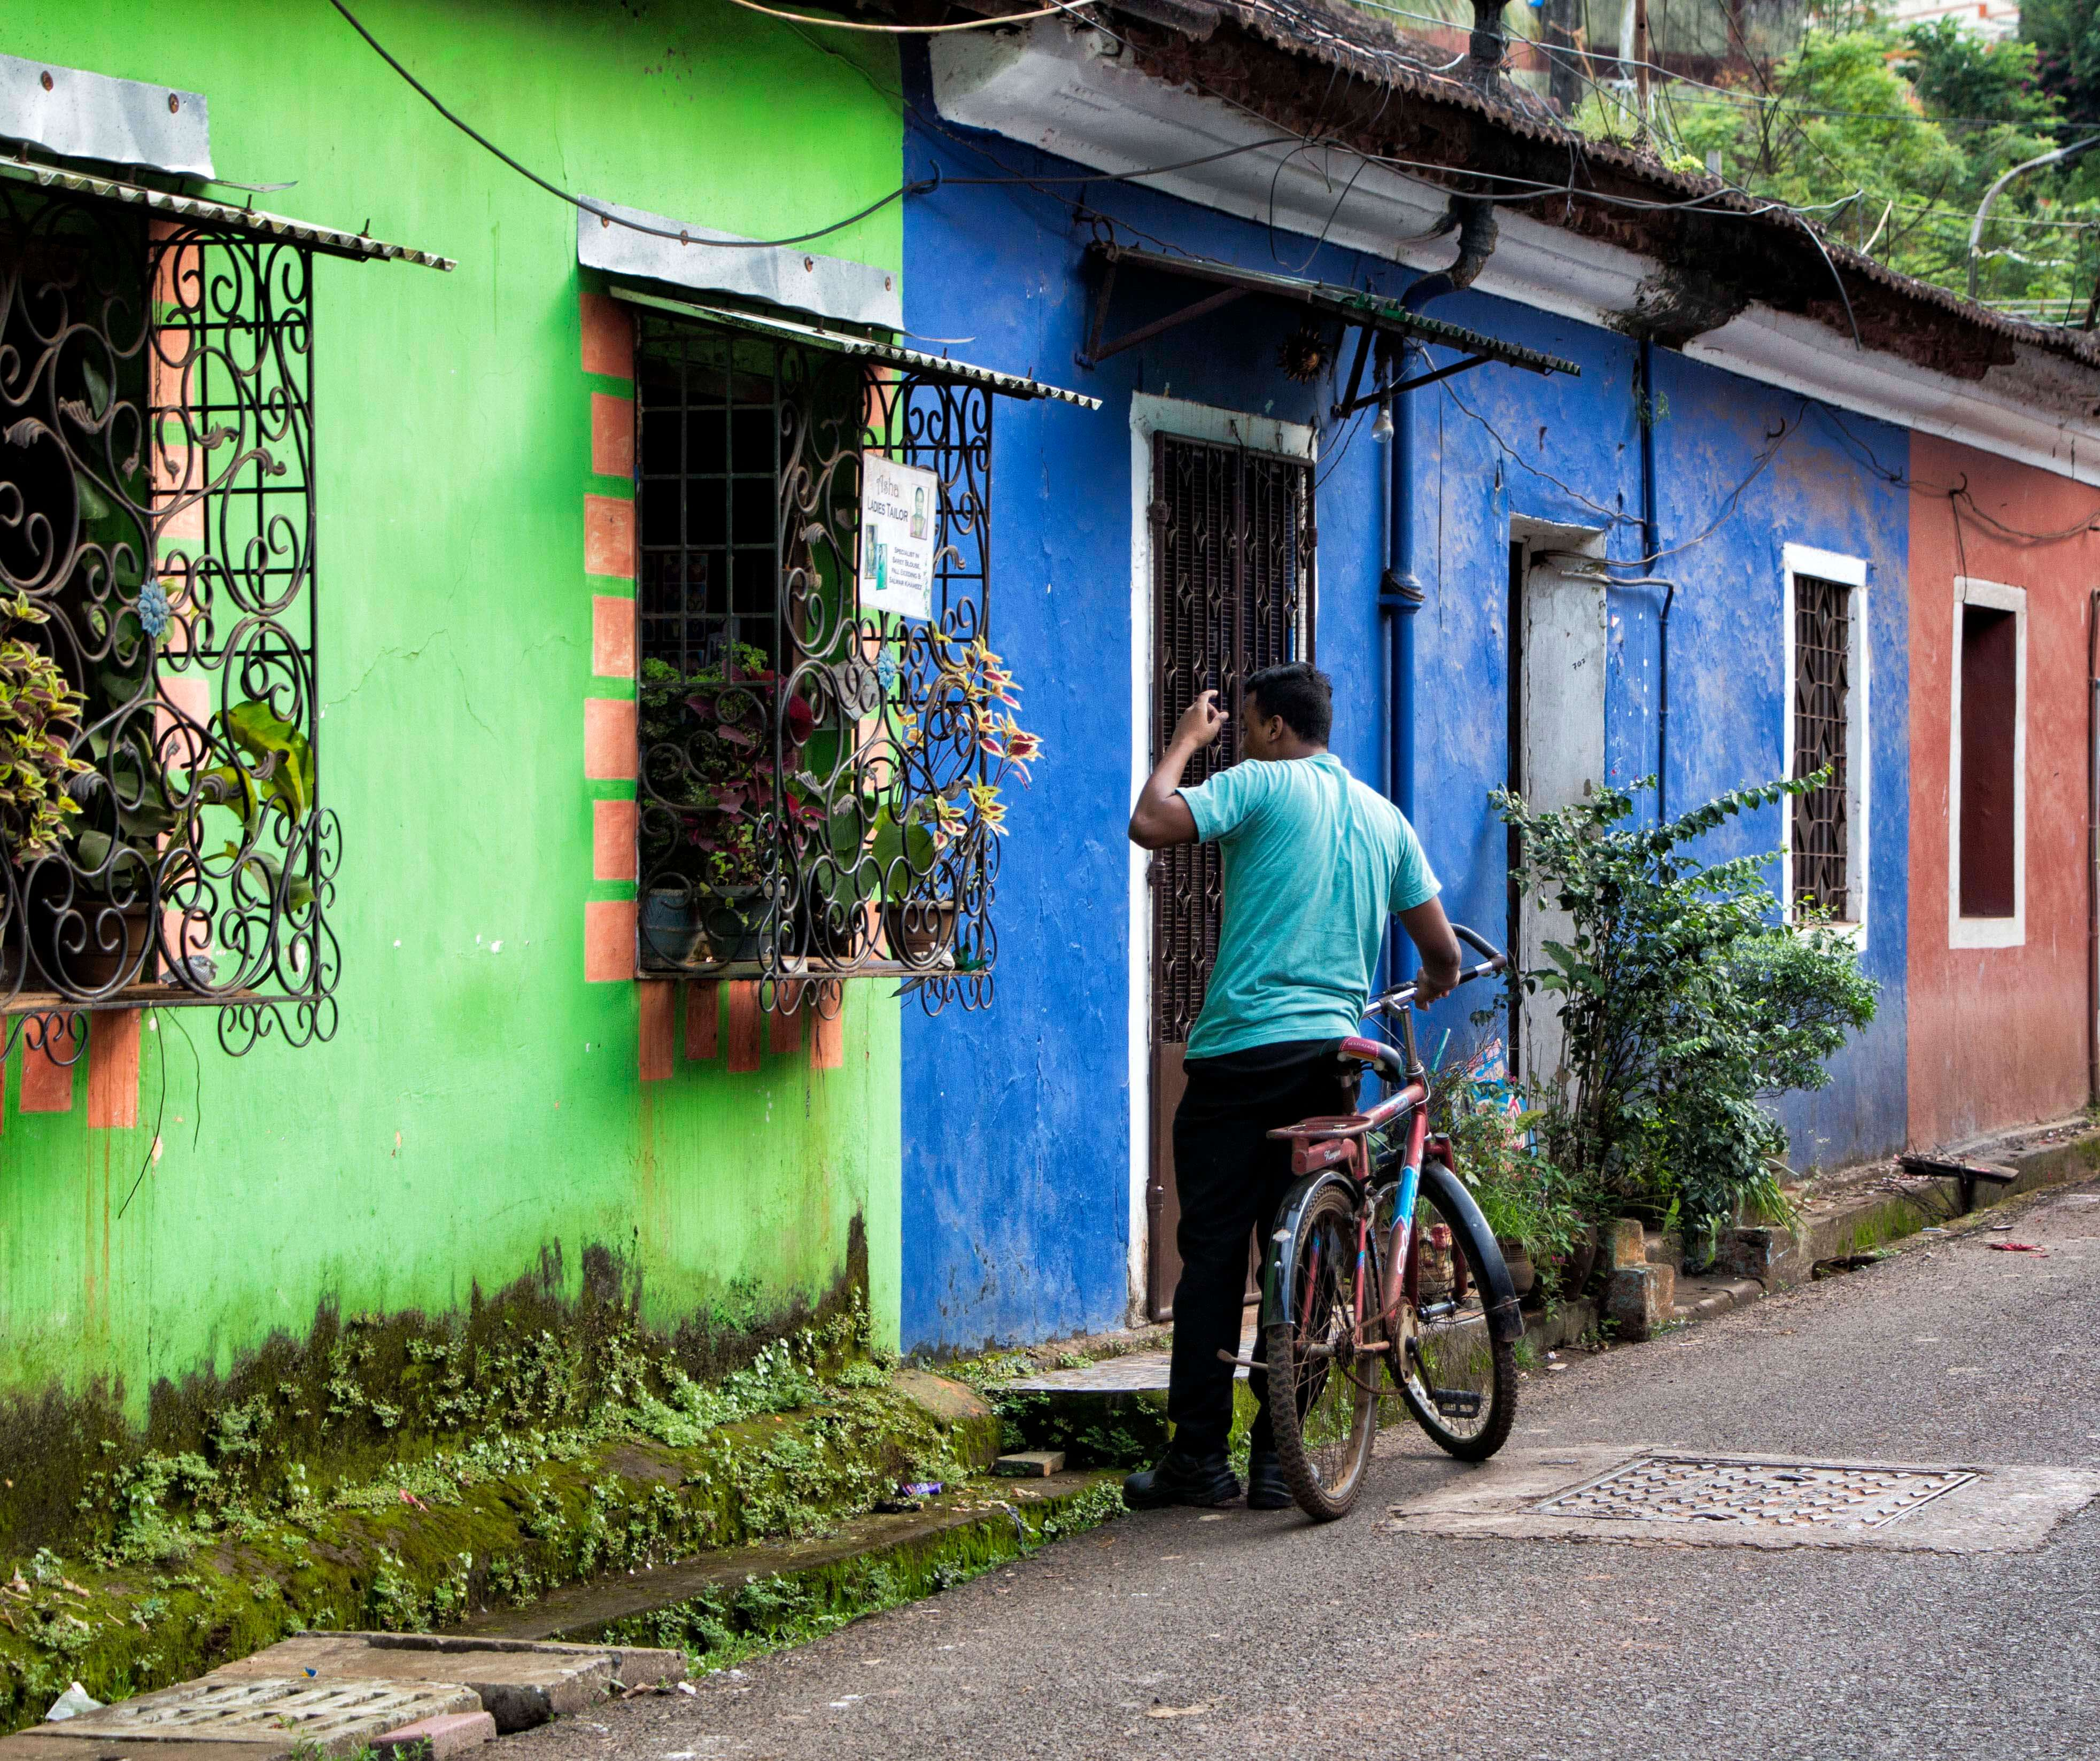 Man with bicycle outside shop in Panaji, Goa